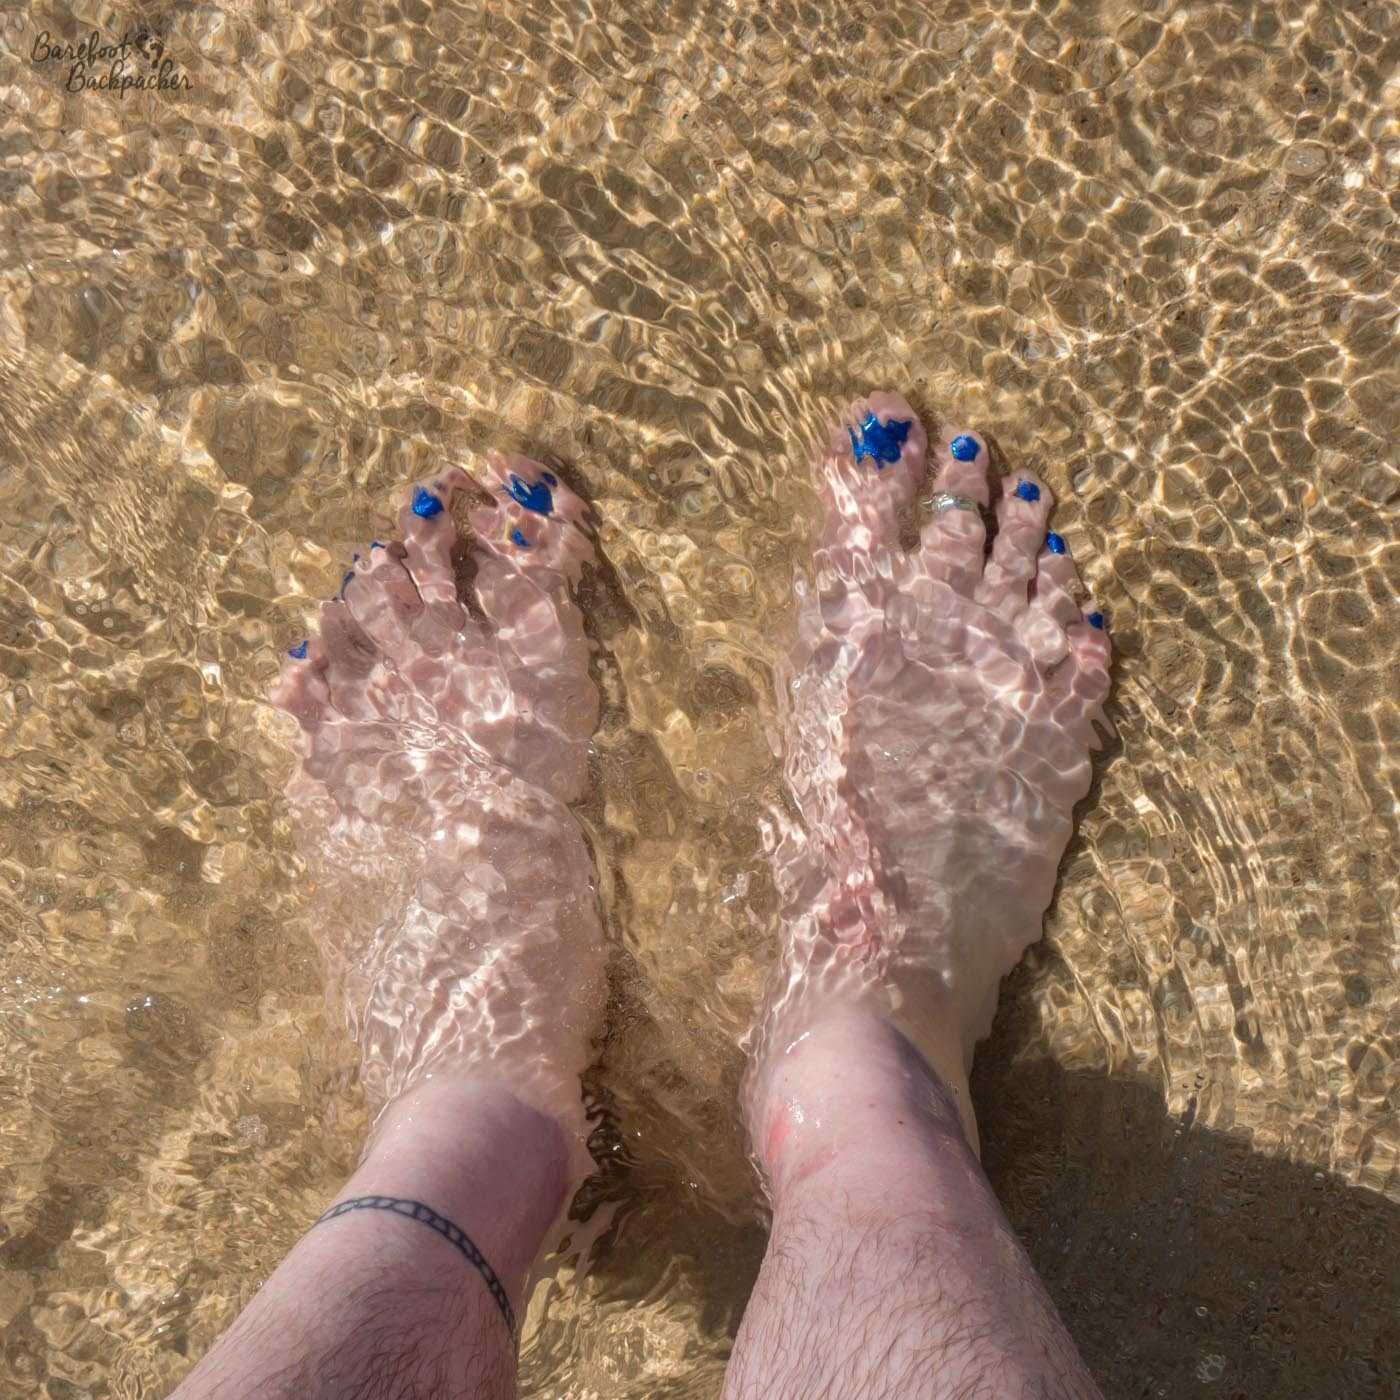 My bare feet in some shallow water at Napcan beach, on the Philippine island of Palawan. The water is very clear; the only disturbance being slight movement of the sand underfoot. My toenails are a sharp blue, still clearly visible under the water.